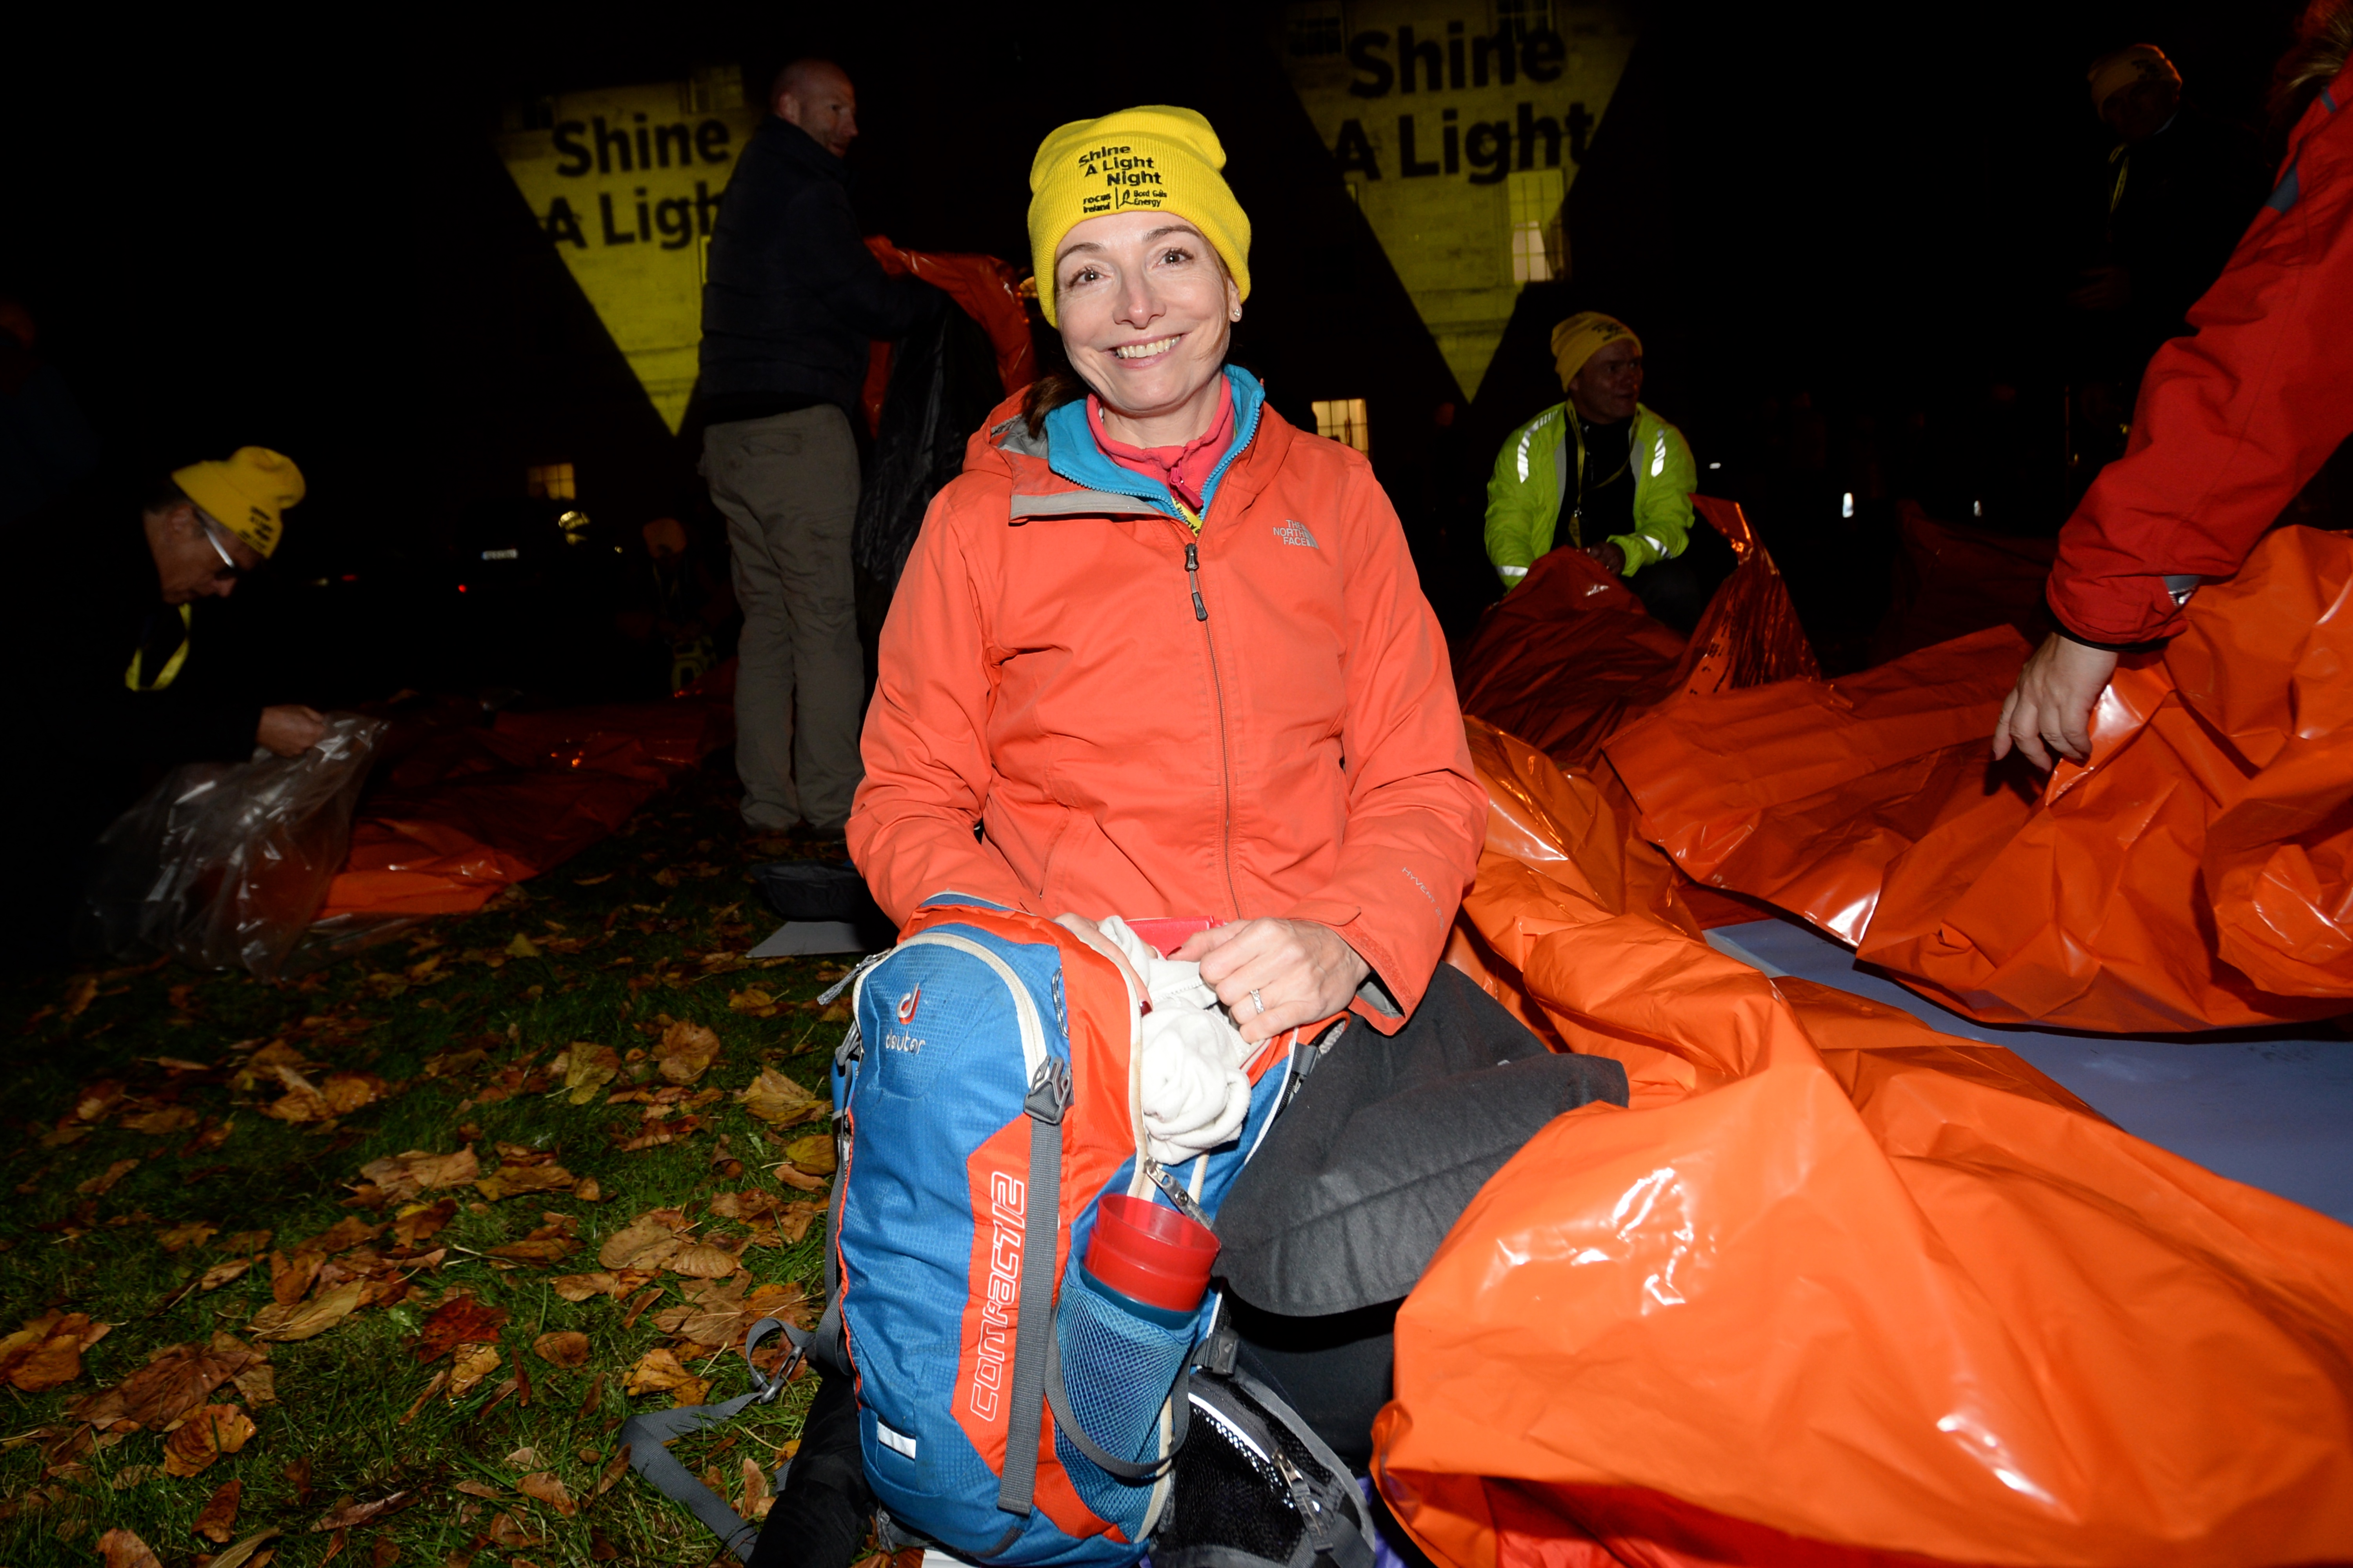 Woman in her sleeping bag outside for Shine A Light Night 2020, smiling towards the camera